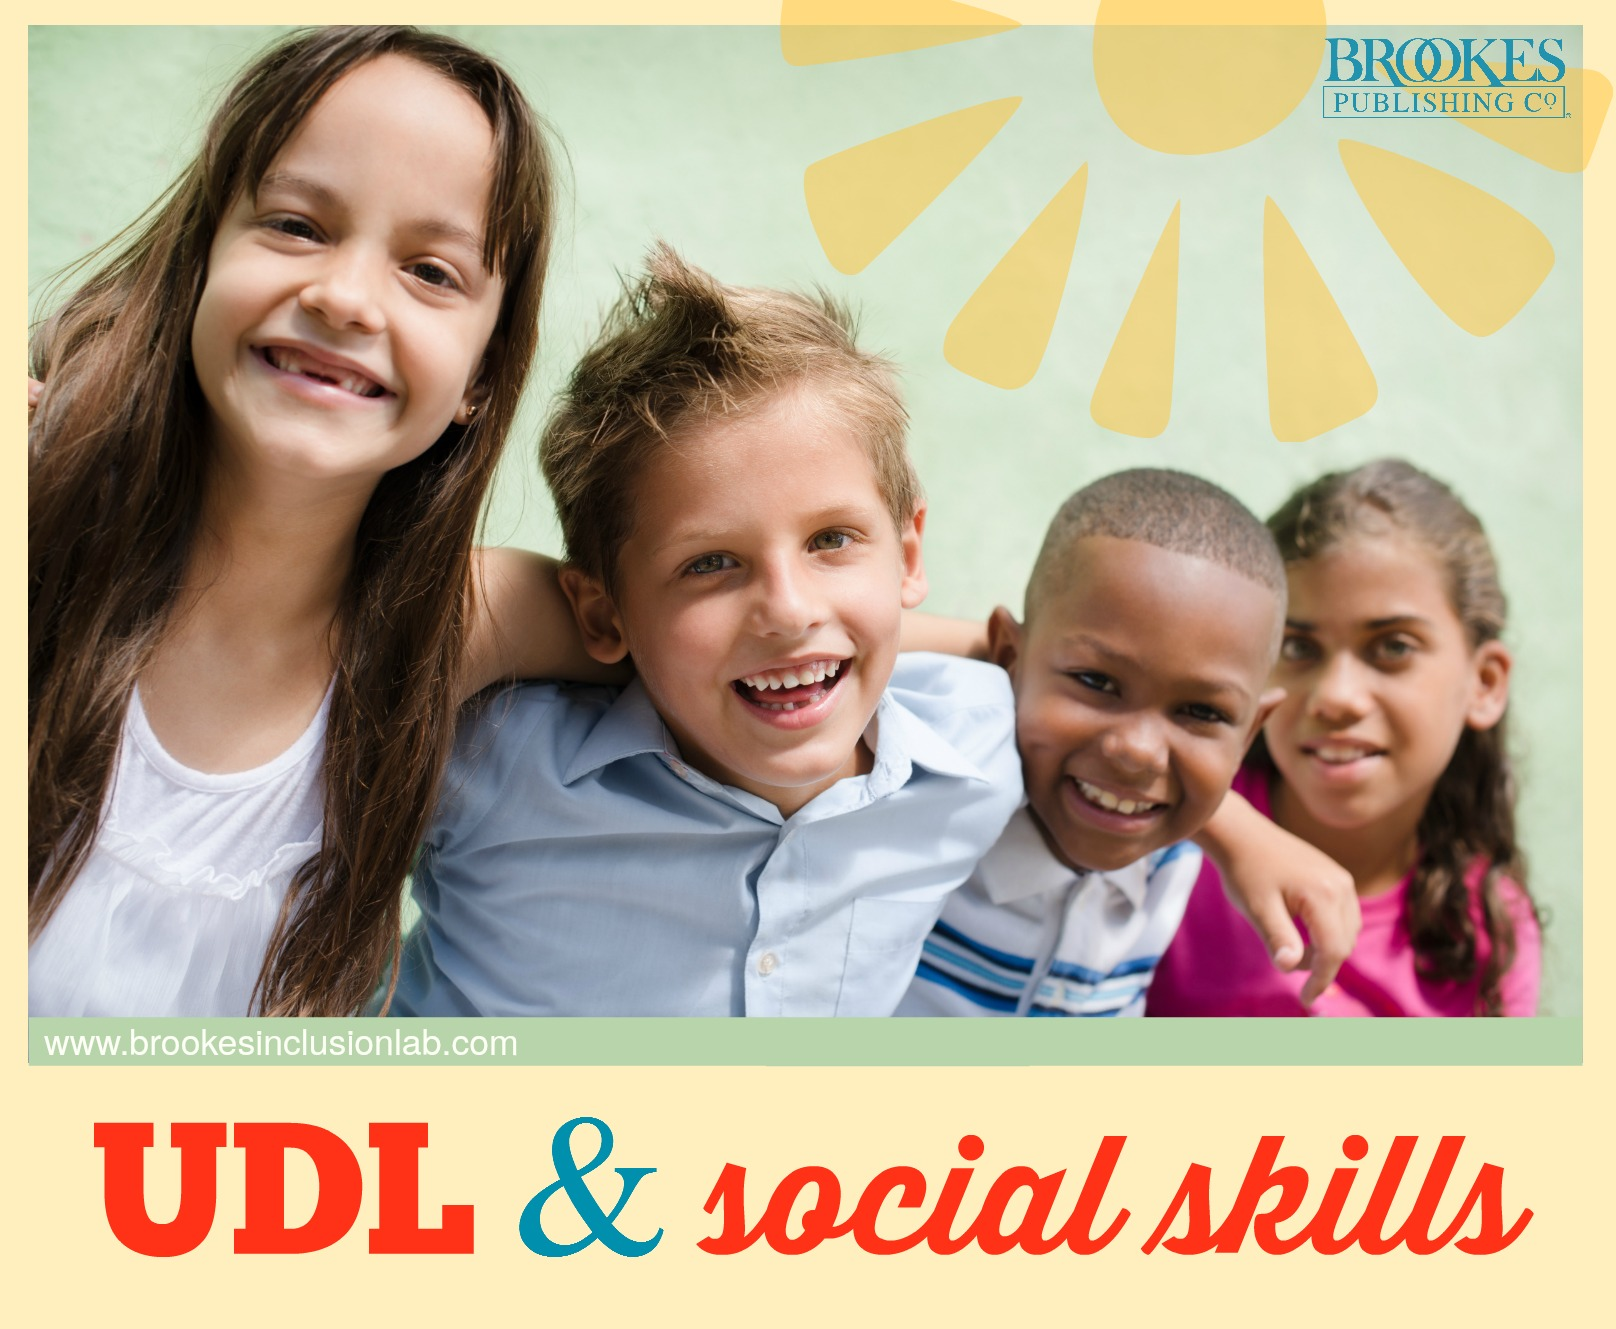 6 Ways to Boost Students' Social Skills (A UDL Post)